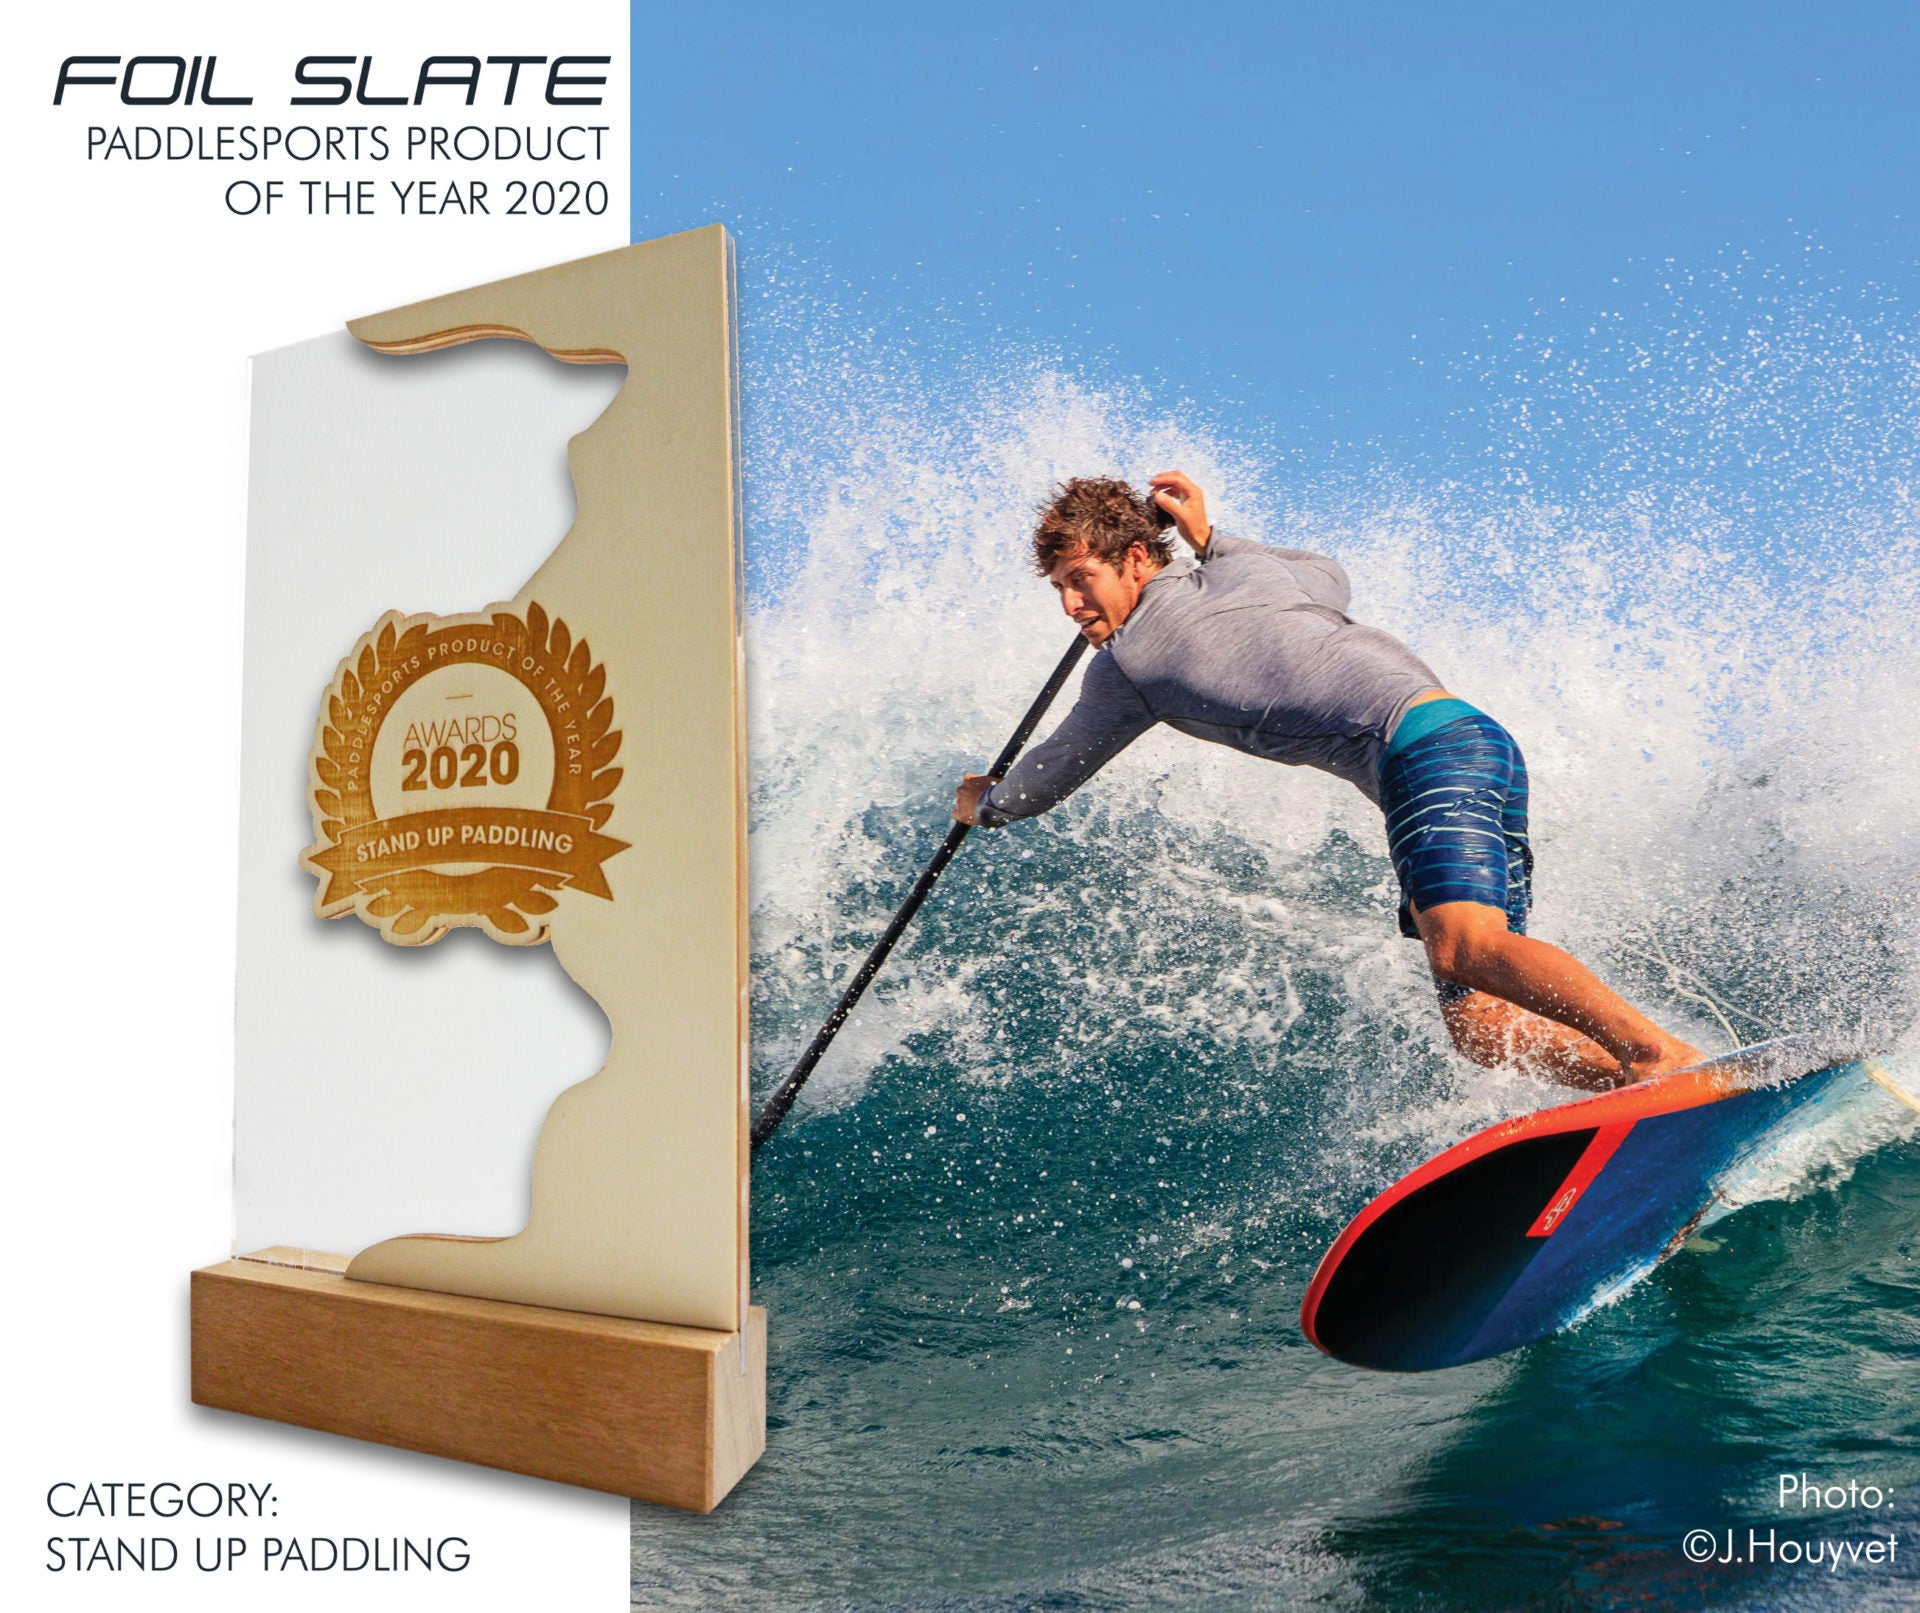 Product of the year JP Foil Slate